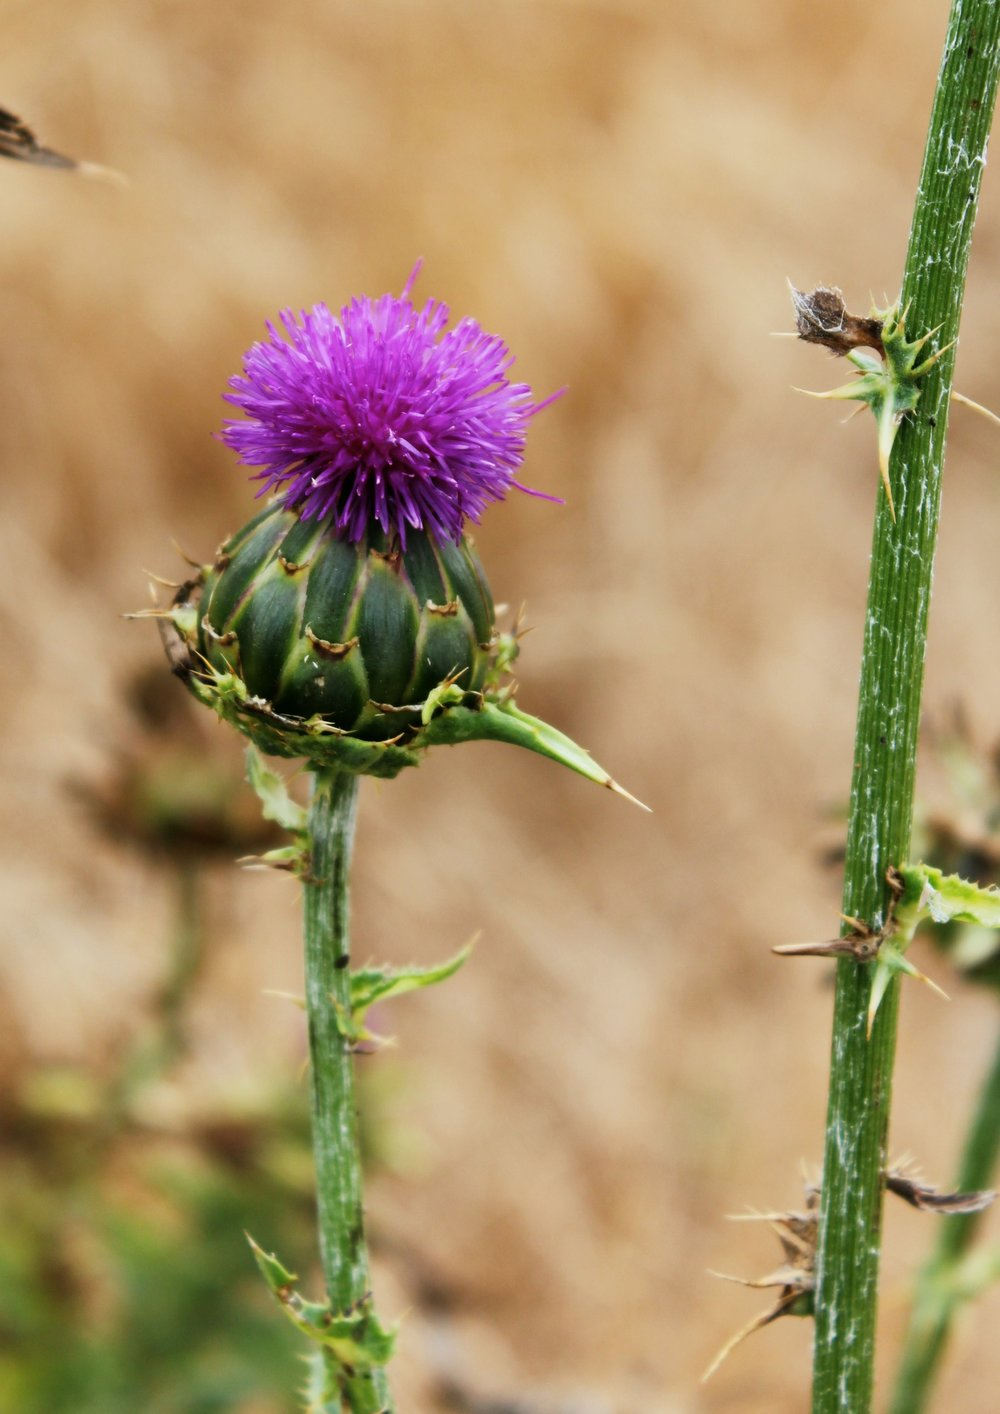 thorny-purple-flower-channel-islands